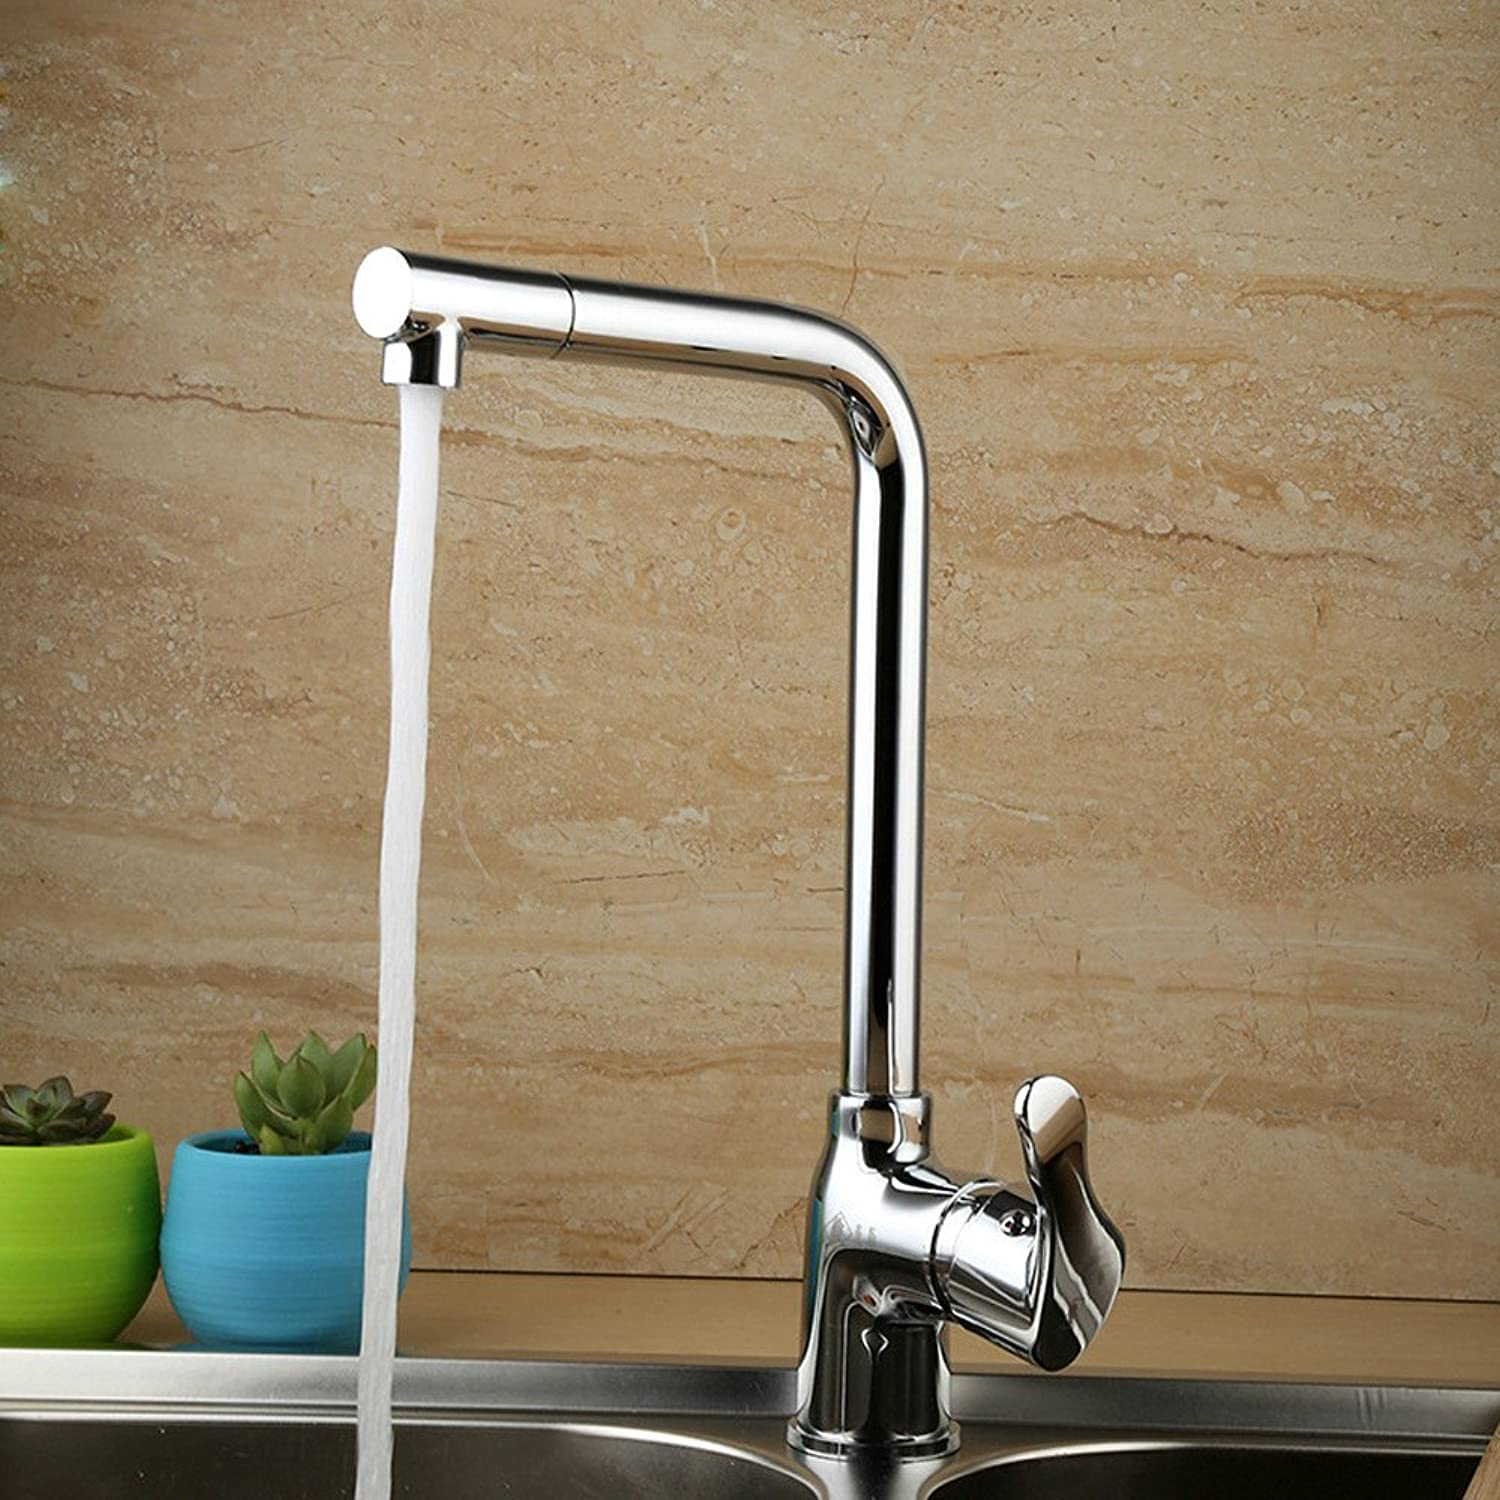 Commercial Single Lever Pull Down Kitchen Sink Faucet Brass Constructed Fine Copper Kitchen Hot and Cold Mixing Faucet redating Kitchen Dish Basin Faucet Water-Saving Corrosion-Resistant Faucet